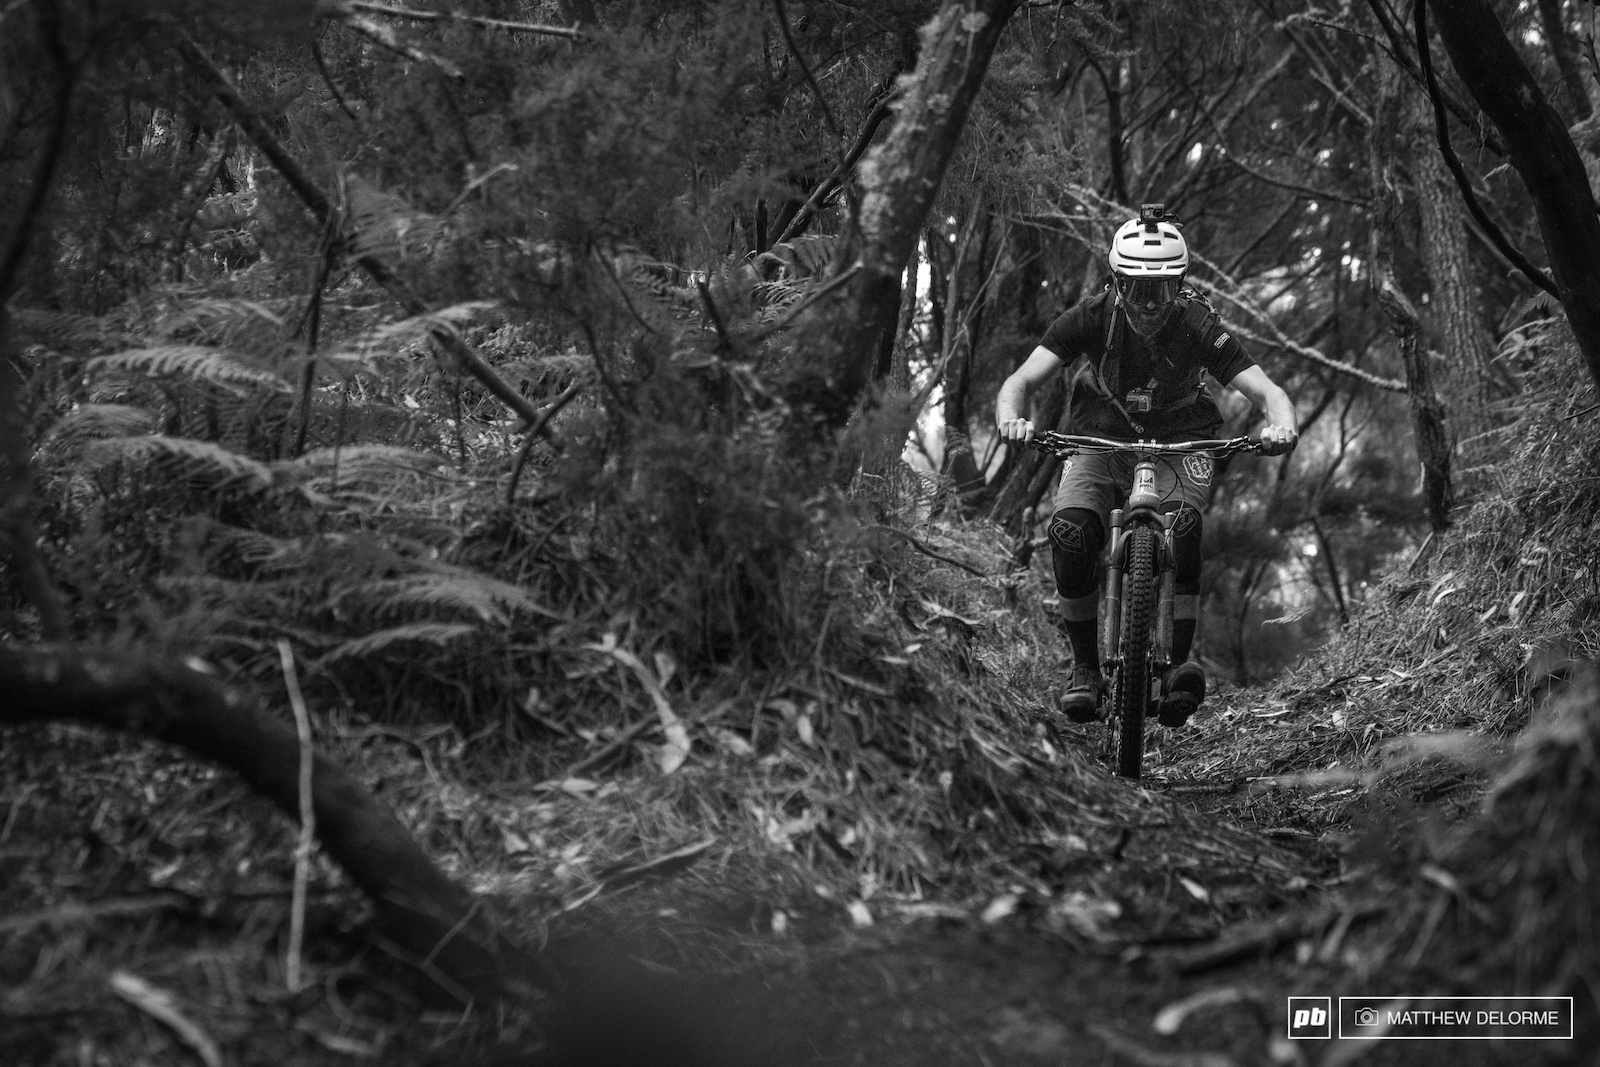 More loamy goodness in stage four. Rick getting the tunnel vision on the course preview.